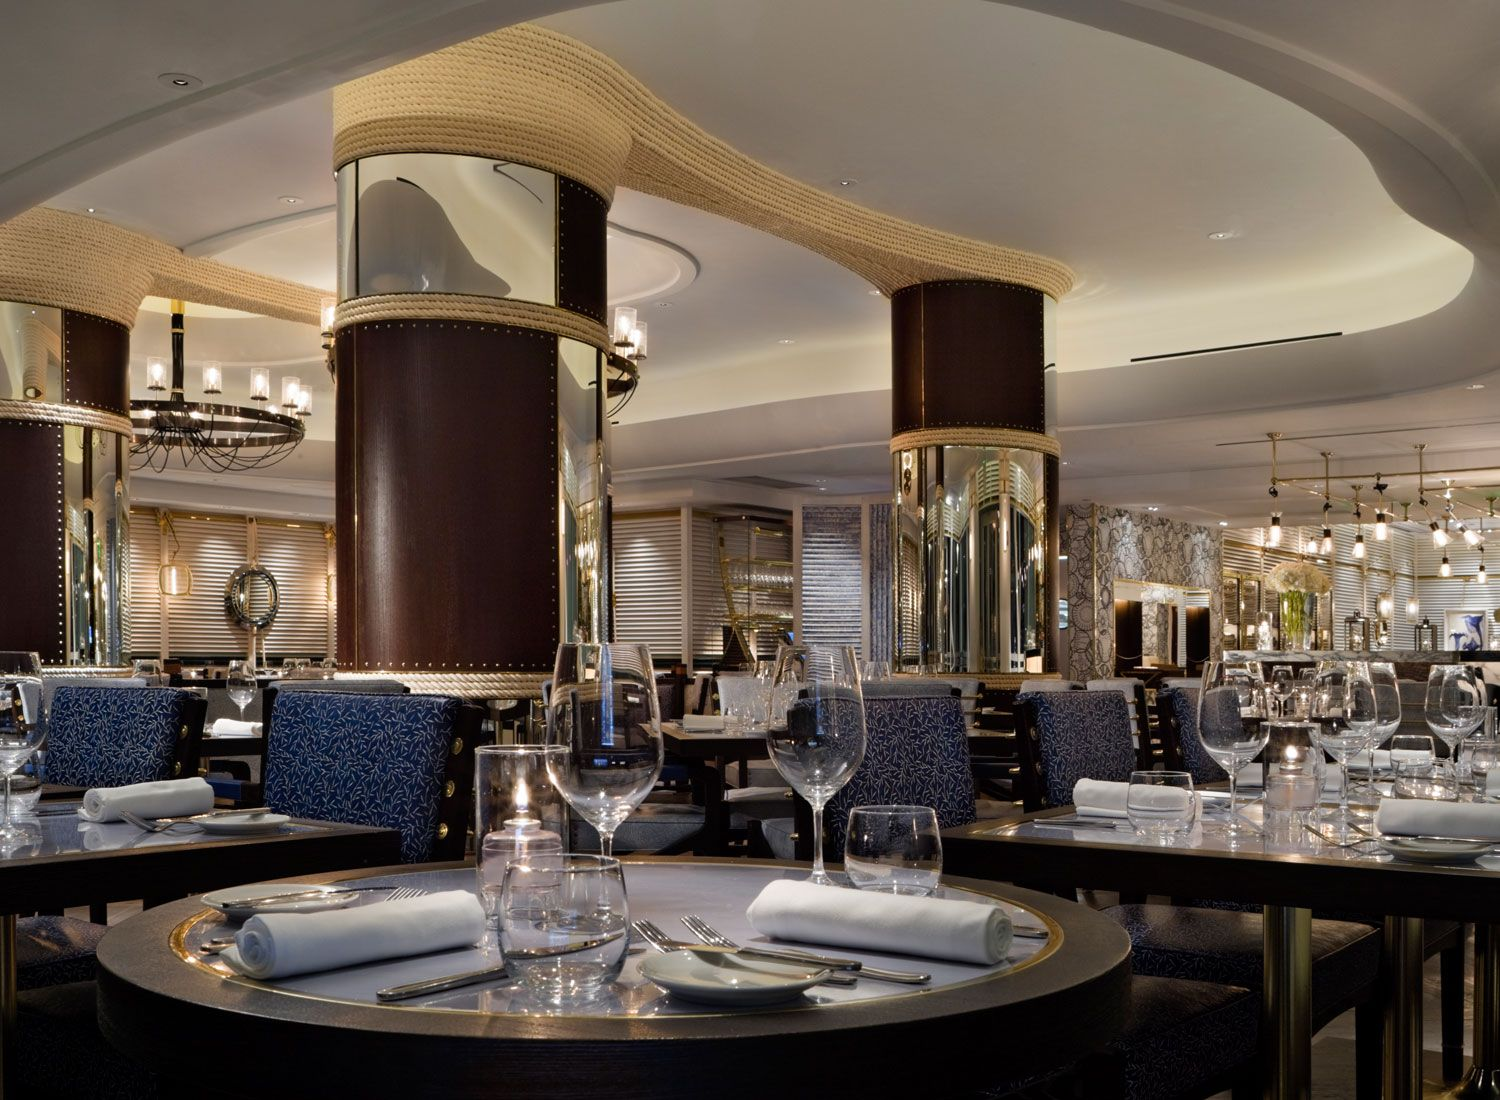 Scarpetta Aaa Four Diamond Award I Have Long Been Asked Where To Find Truly Phenomenal Italian Food In Miami An Authentic Sophisticated Soulful Eatery